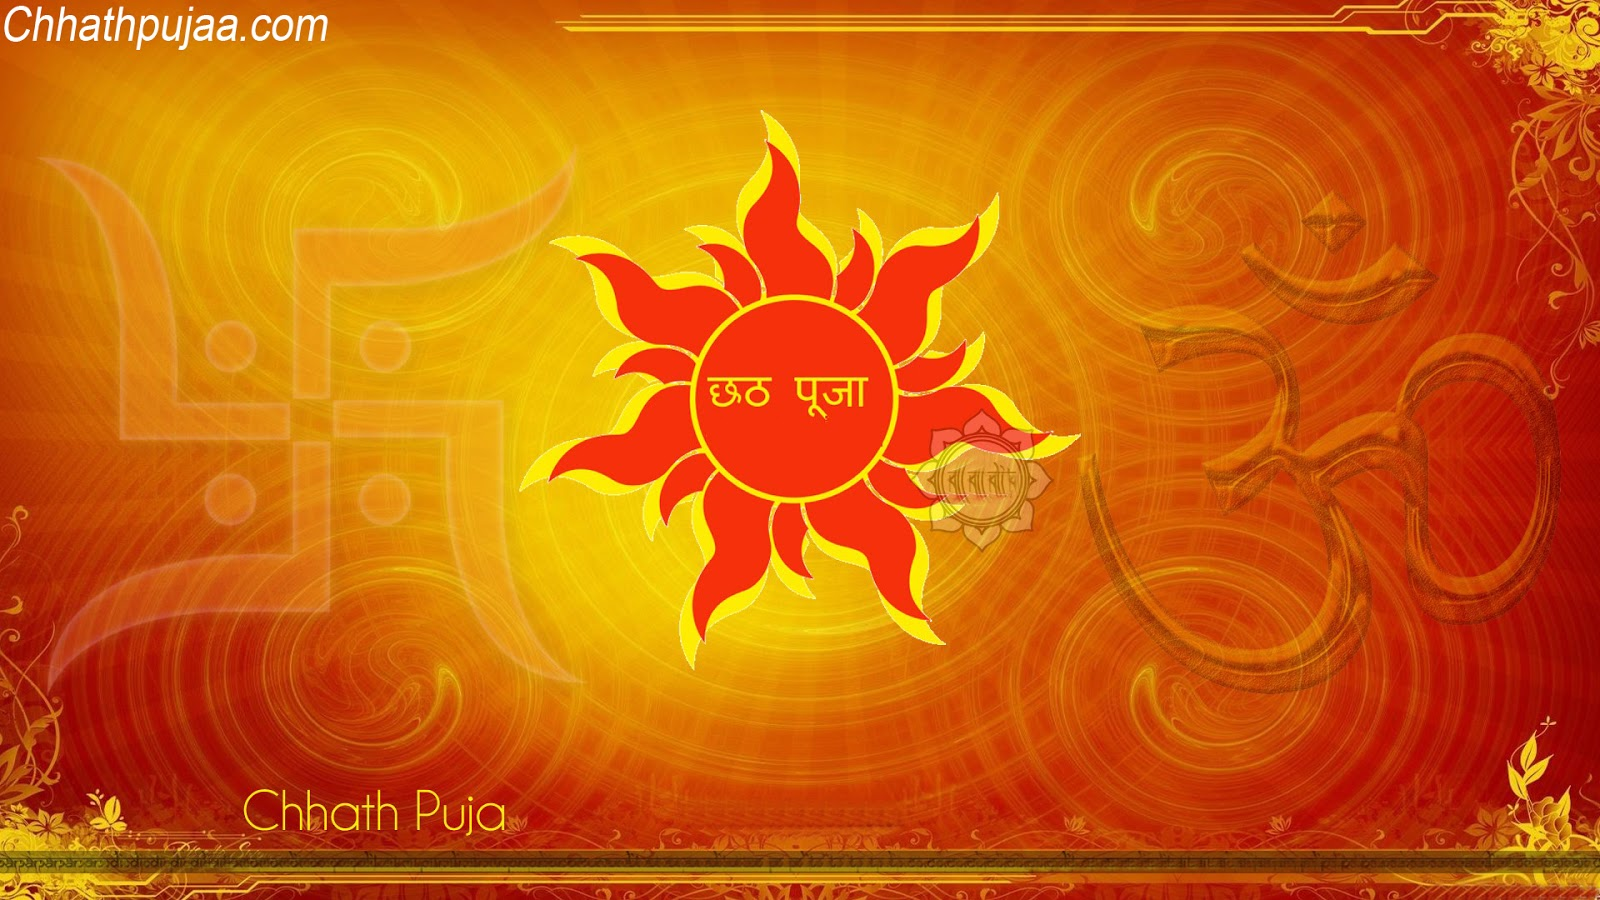 Wallpaper download 2017 - Recommended Chhath Puja Date And Related Information